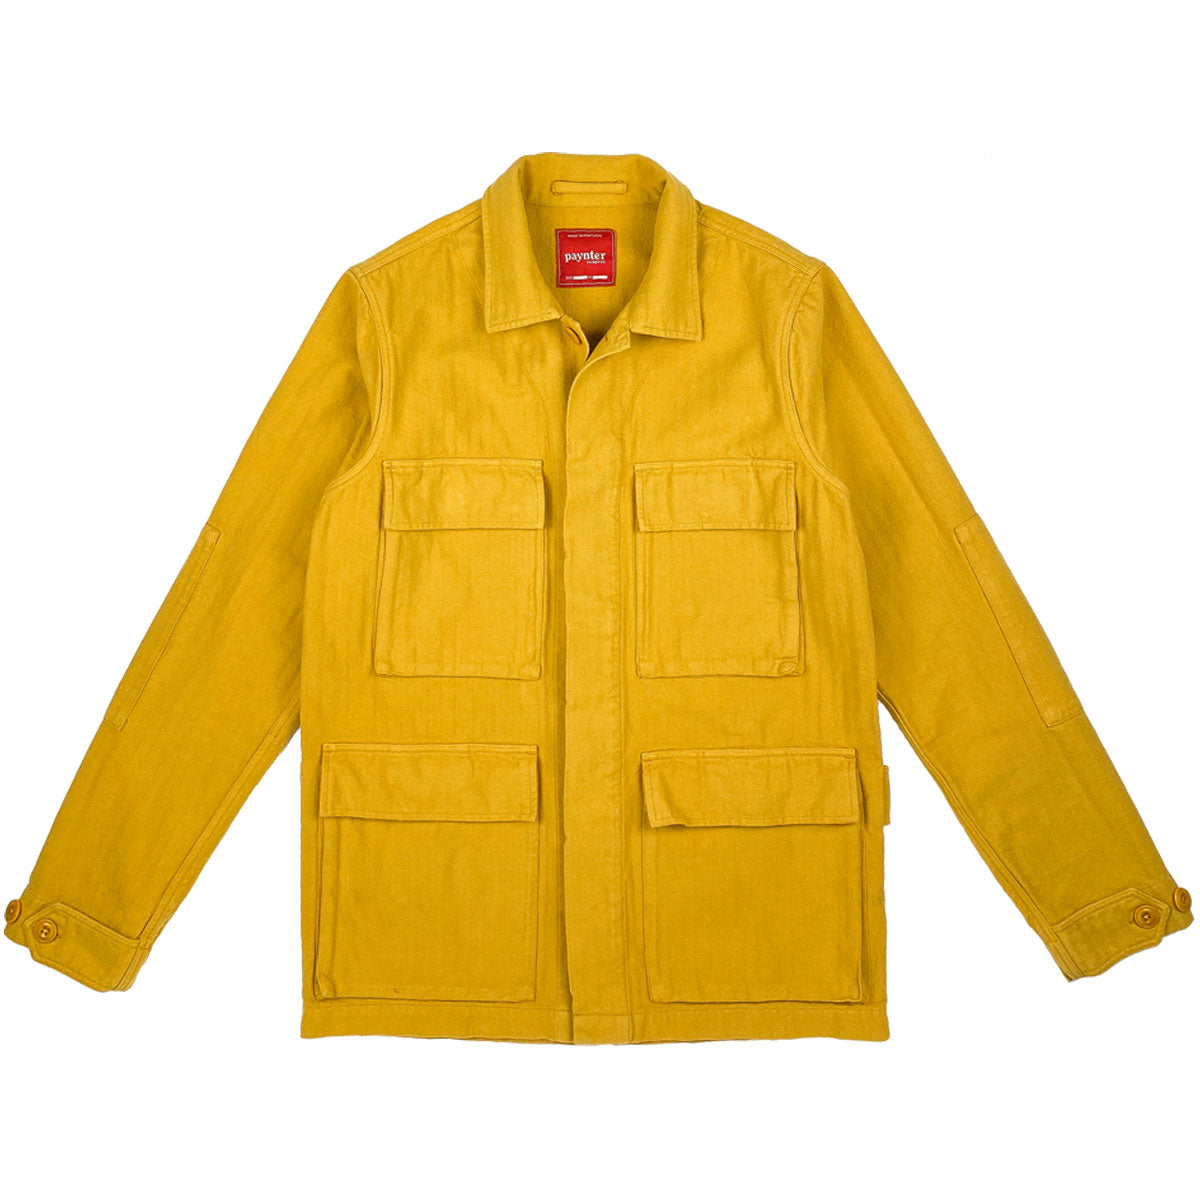 Paynter Jacket Co's Batch No.3 - The Field Jacket. Limited Edition. Label designed by Ilya Milstein. Mustard Yellow. Military.